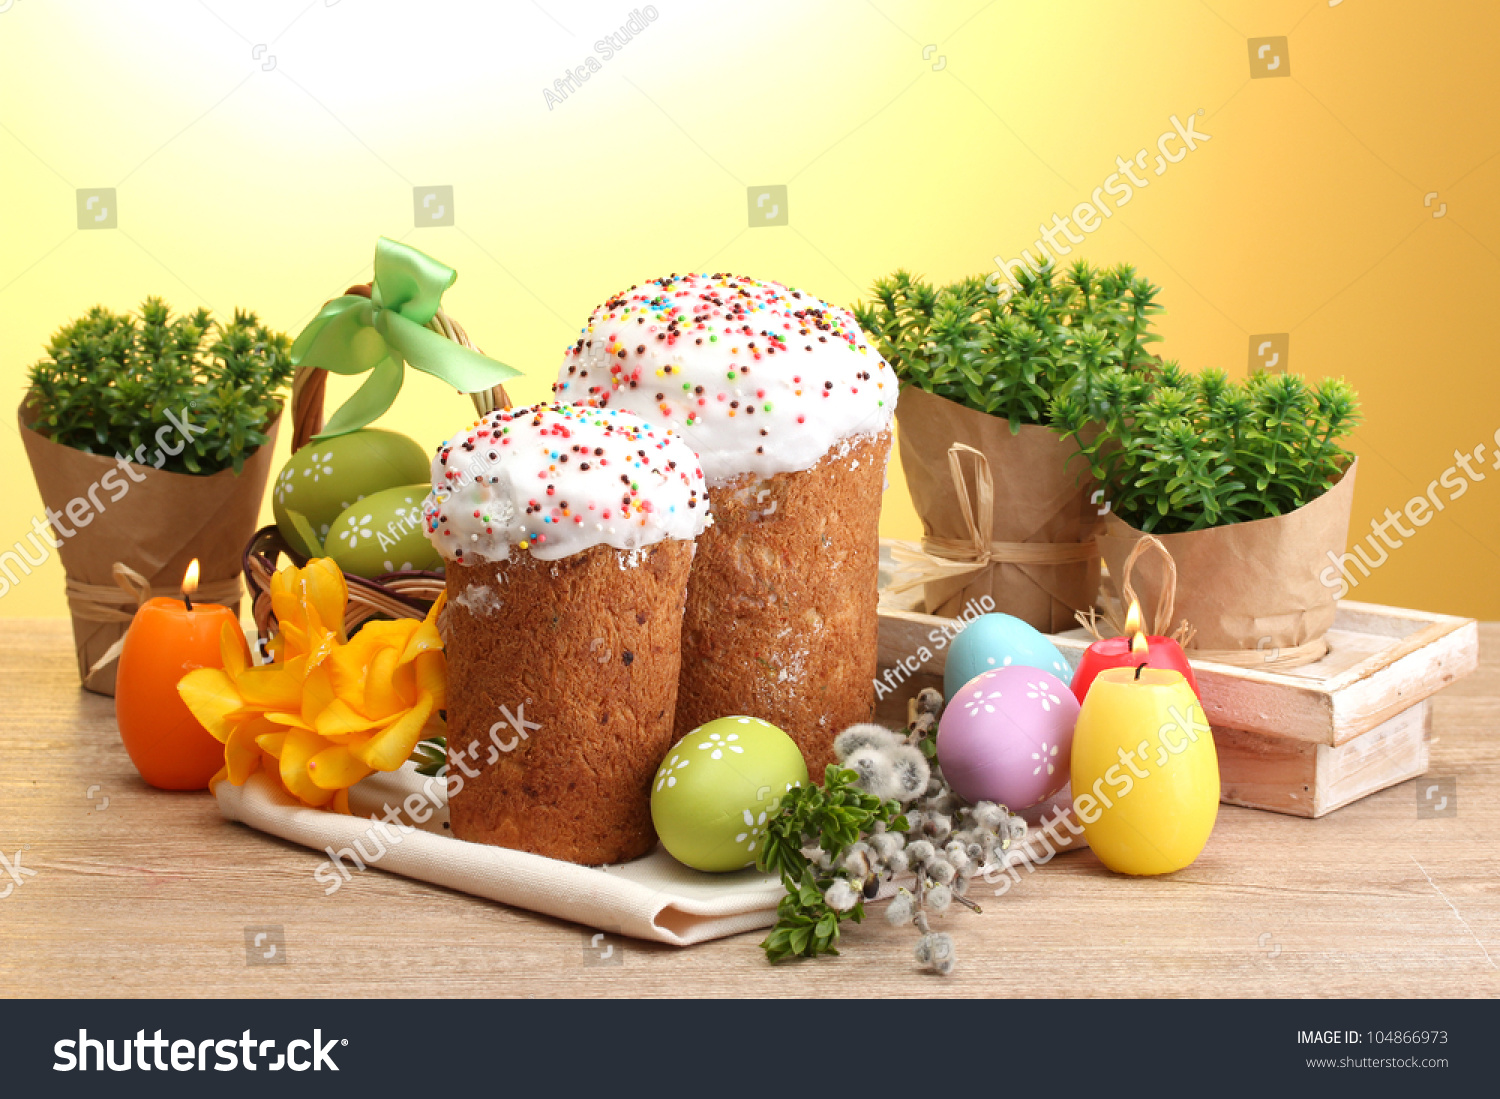 beautiful easter cakes colorful eggs and candles on wooden table on